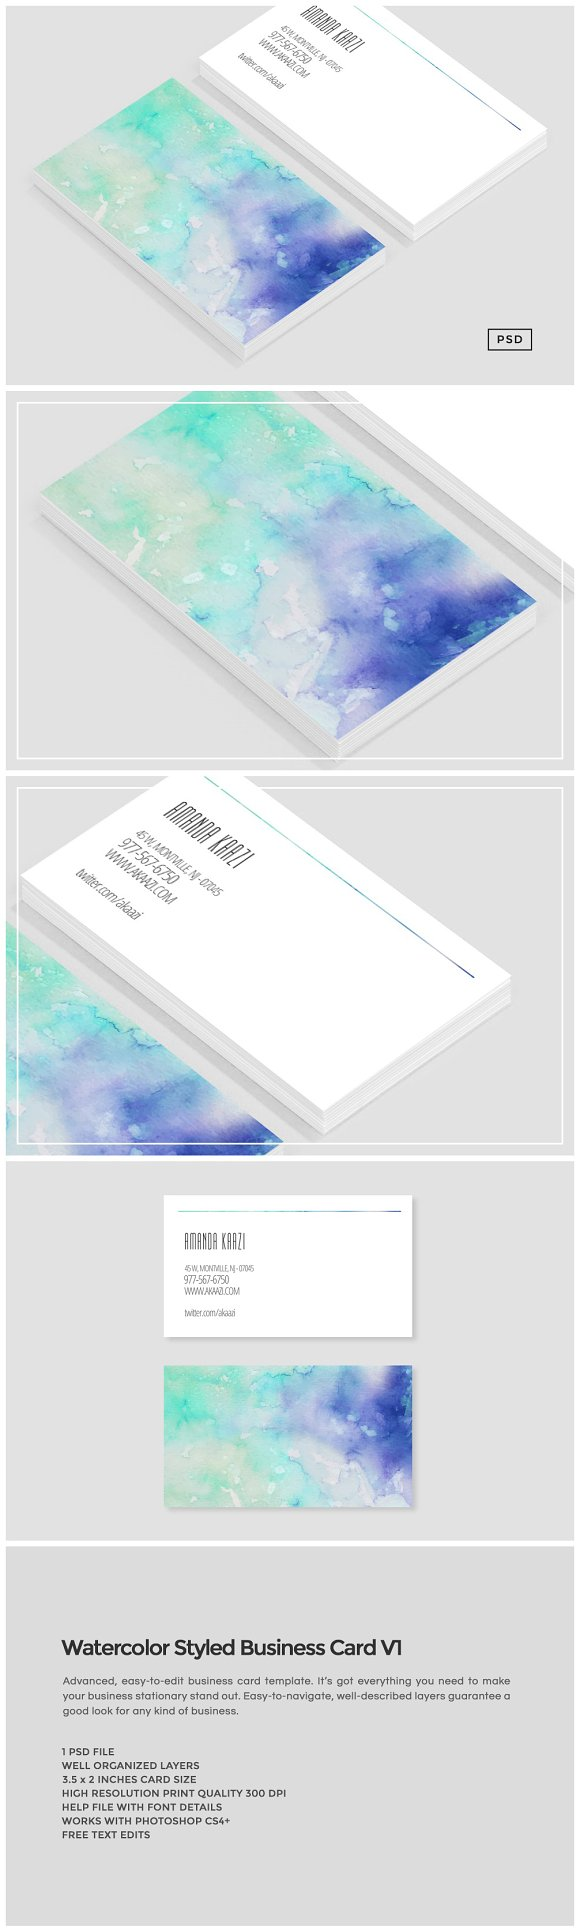 Watercolor styled business card v1 business card templates watercolor styled business card v1 business card templates creative market reheart Image collections